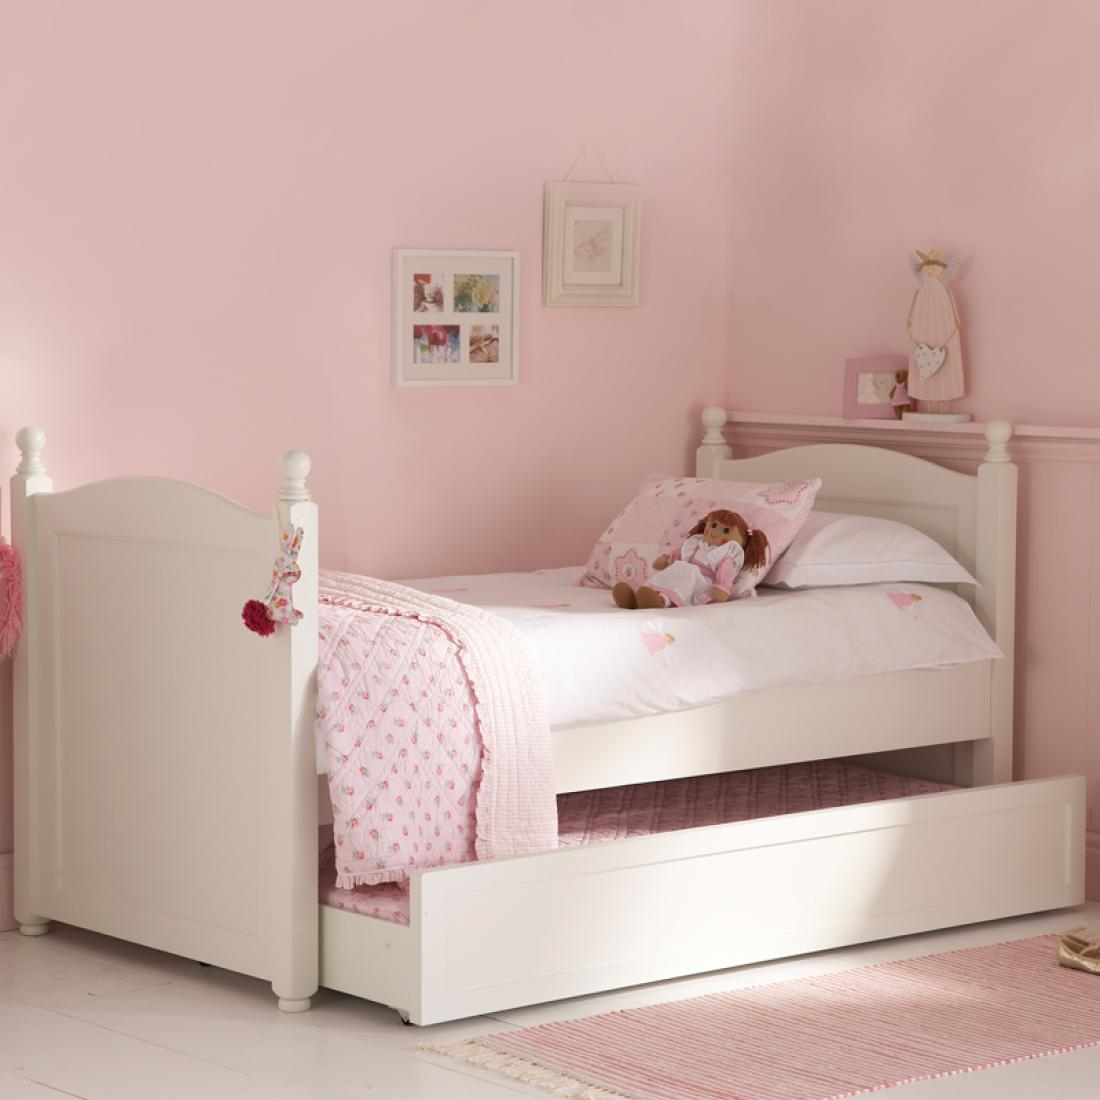 white truckle bed | childrens bedroom furniture uk